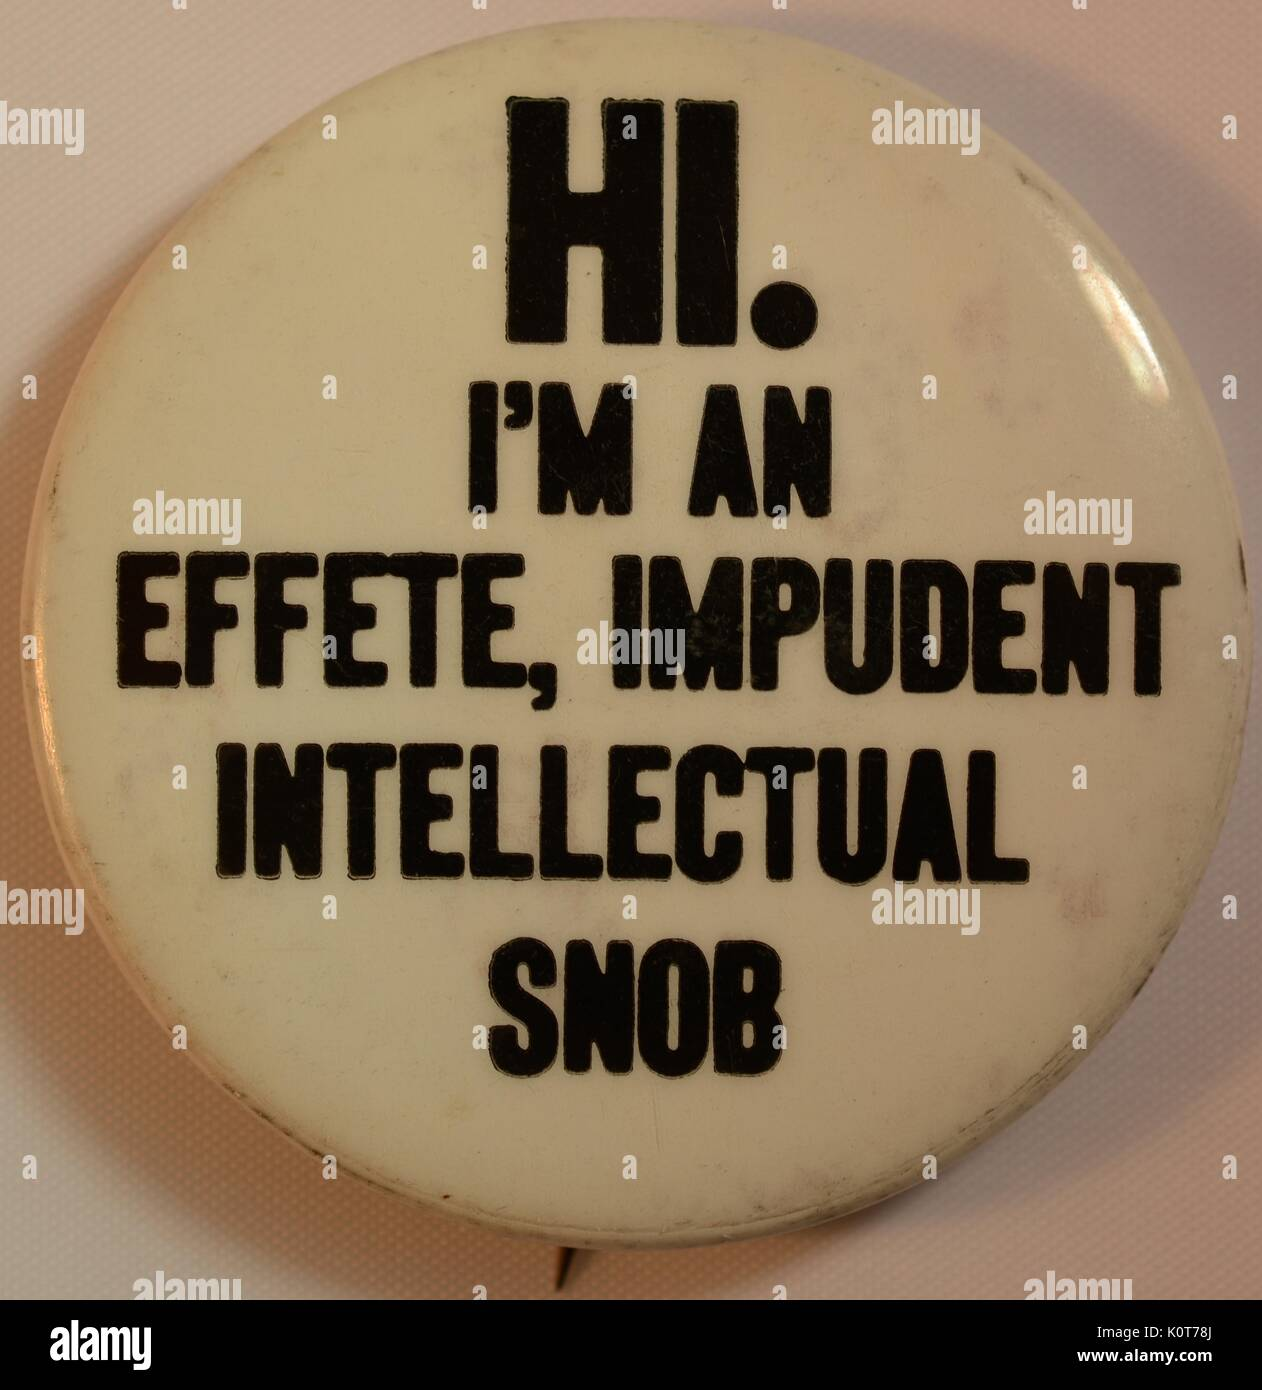 An anti-Vietnam War protest pin that contains the text 'Hi, I'm an effete, impudent, intellectual snob', based on a quote by Vice President Spiro Agnew where he was insulting protesters of the war, 1968. - Stock Image